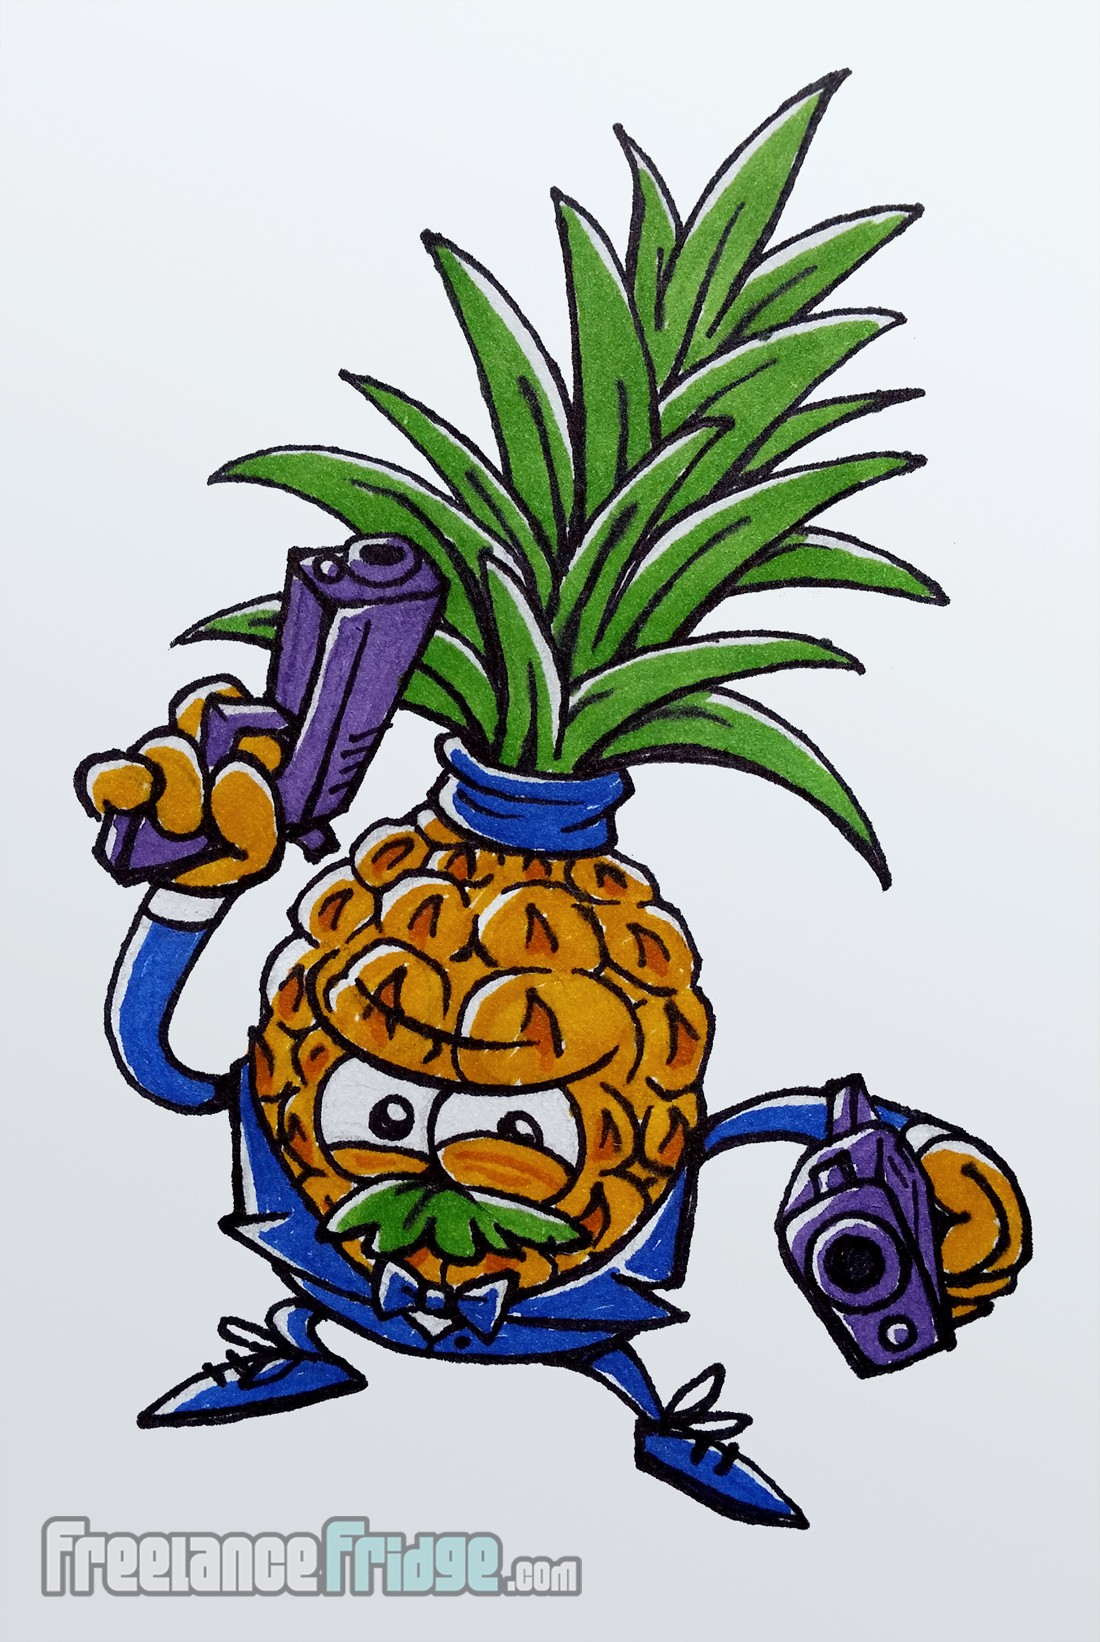 Spy Secret Agent Pinapple Cartoon Drawing Colored with Markers Artwork Sketch